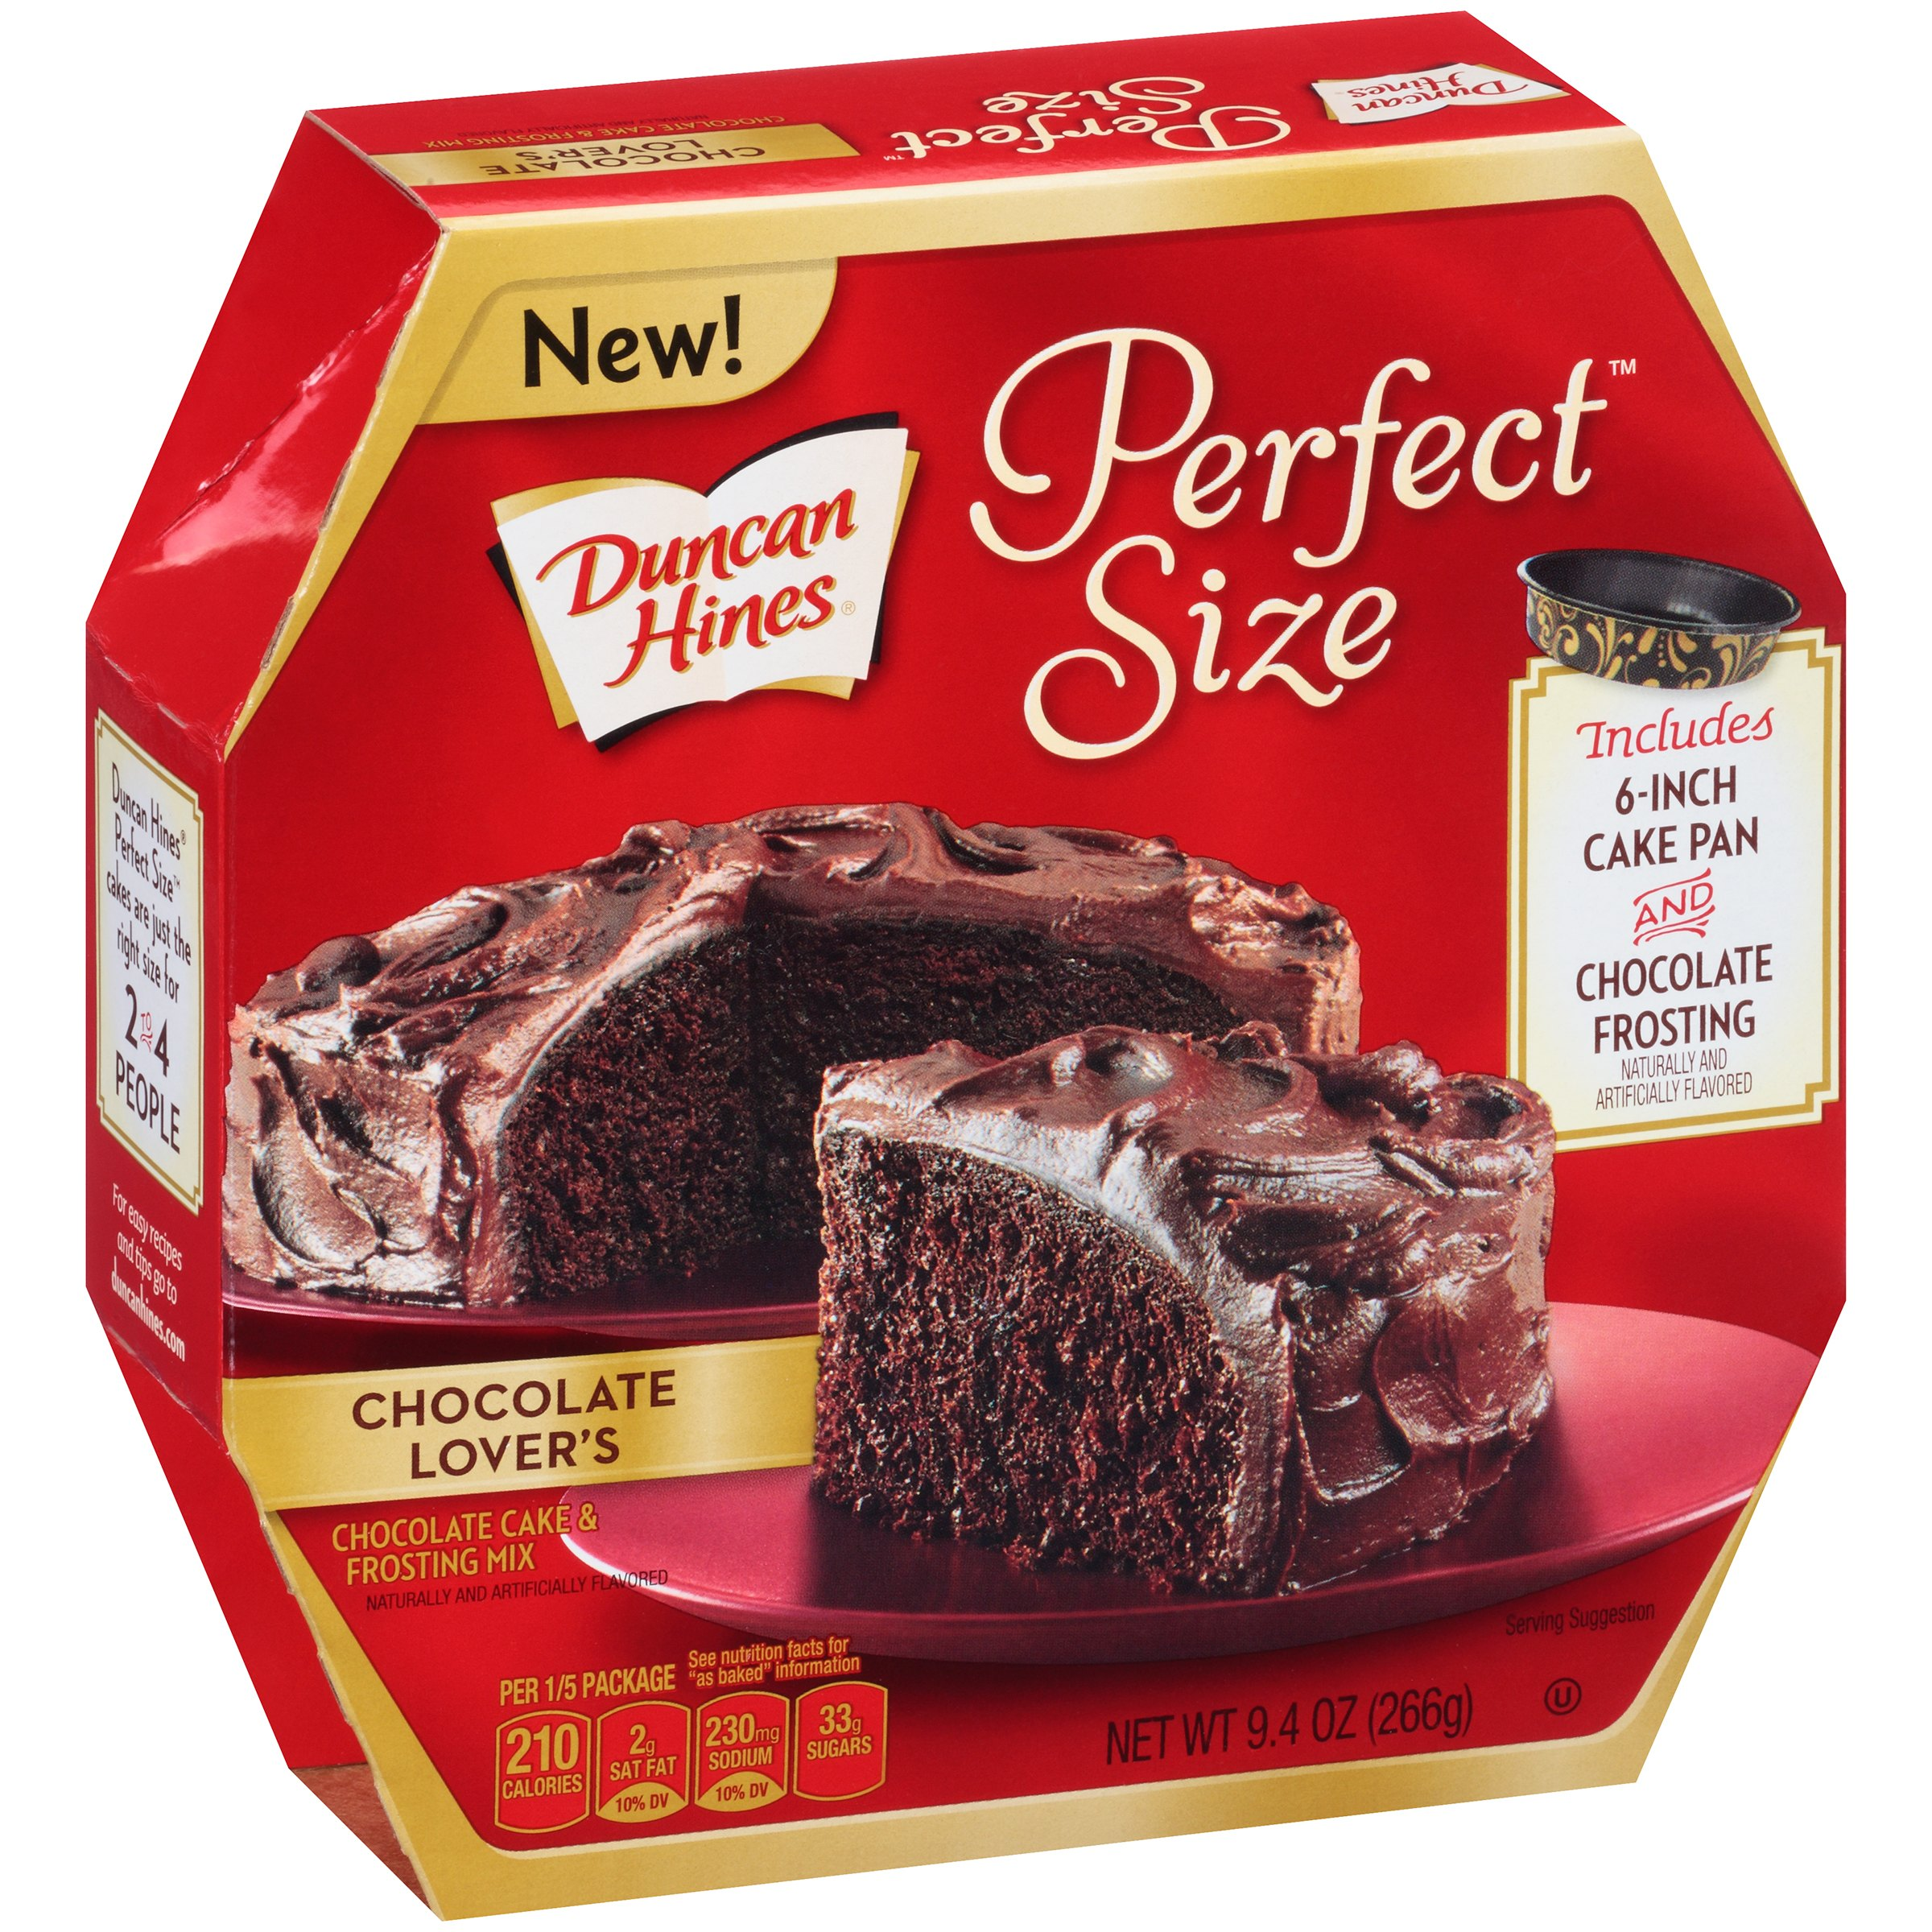 Duncan Hines Perfect Size Cake Mix Chocolate Lover's, 9.4 OZ by Pinnacle Foods Group LLC